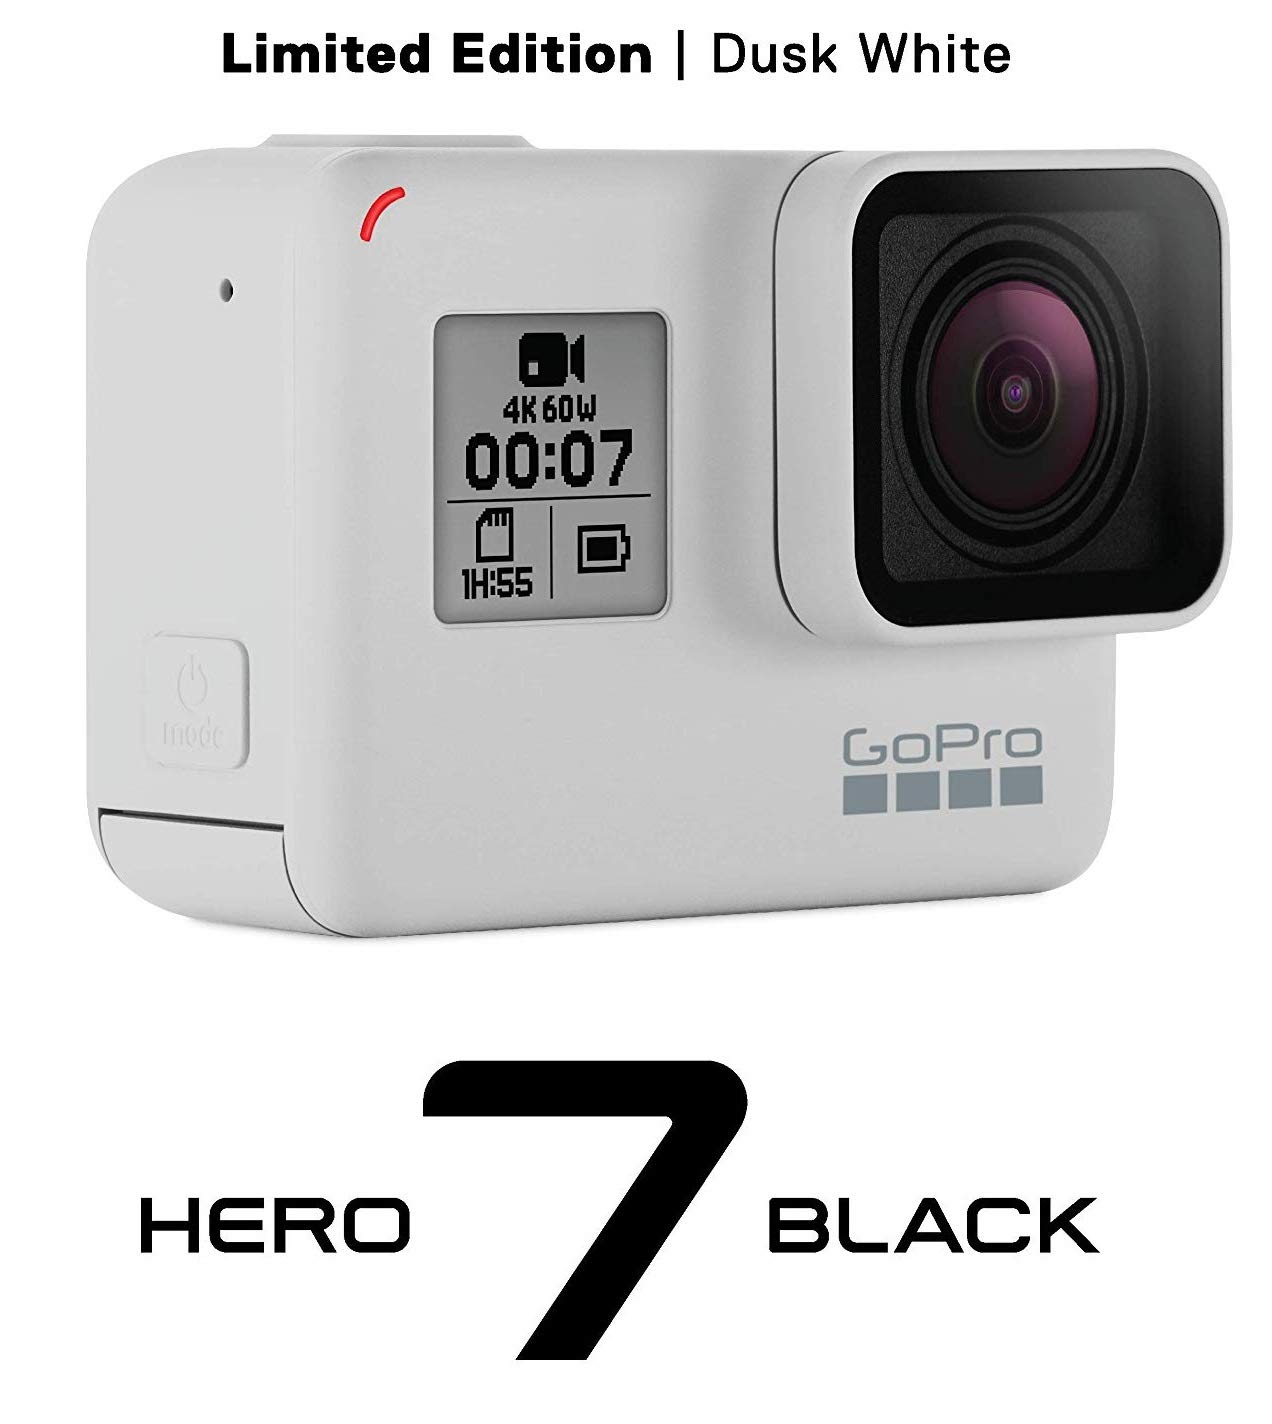 Gopro Hero 7 Black Limited Edition Dusk White Shopping Mantras